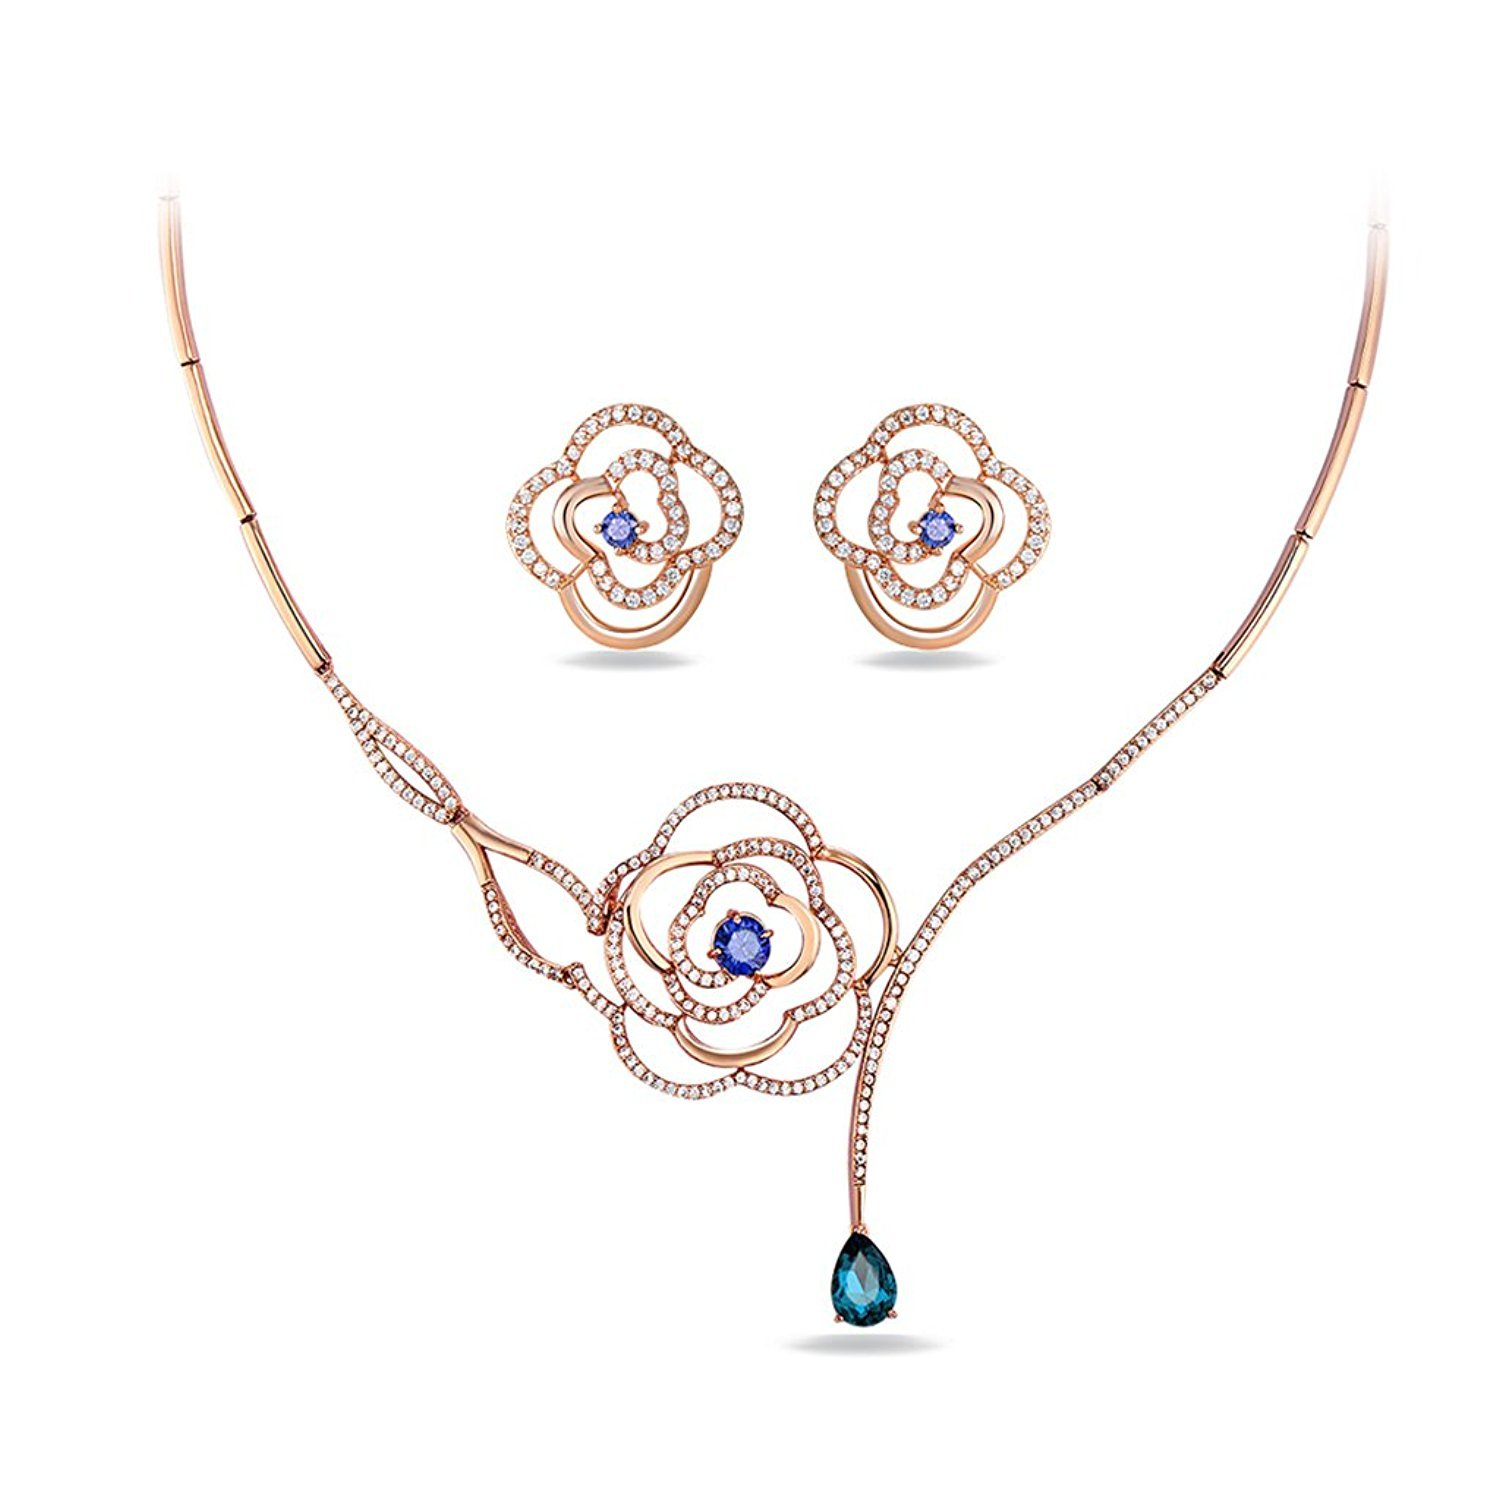 IUHA Love Roses Shaped Cubic Zirconia eye-catching Necklance and Earrings Luxury Jewelry Sets Wedding Gift by IUHA